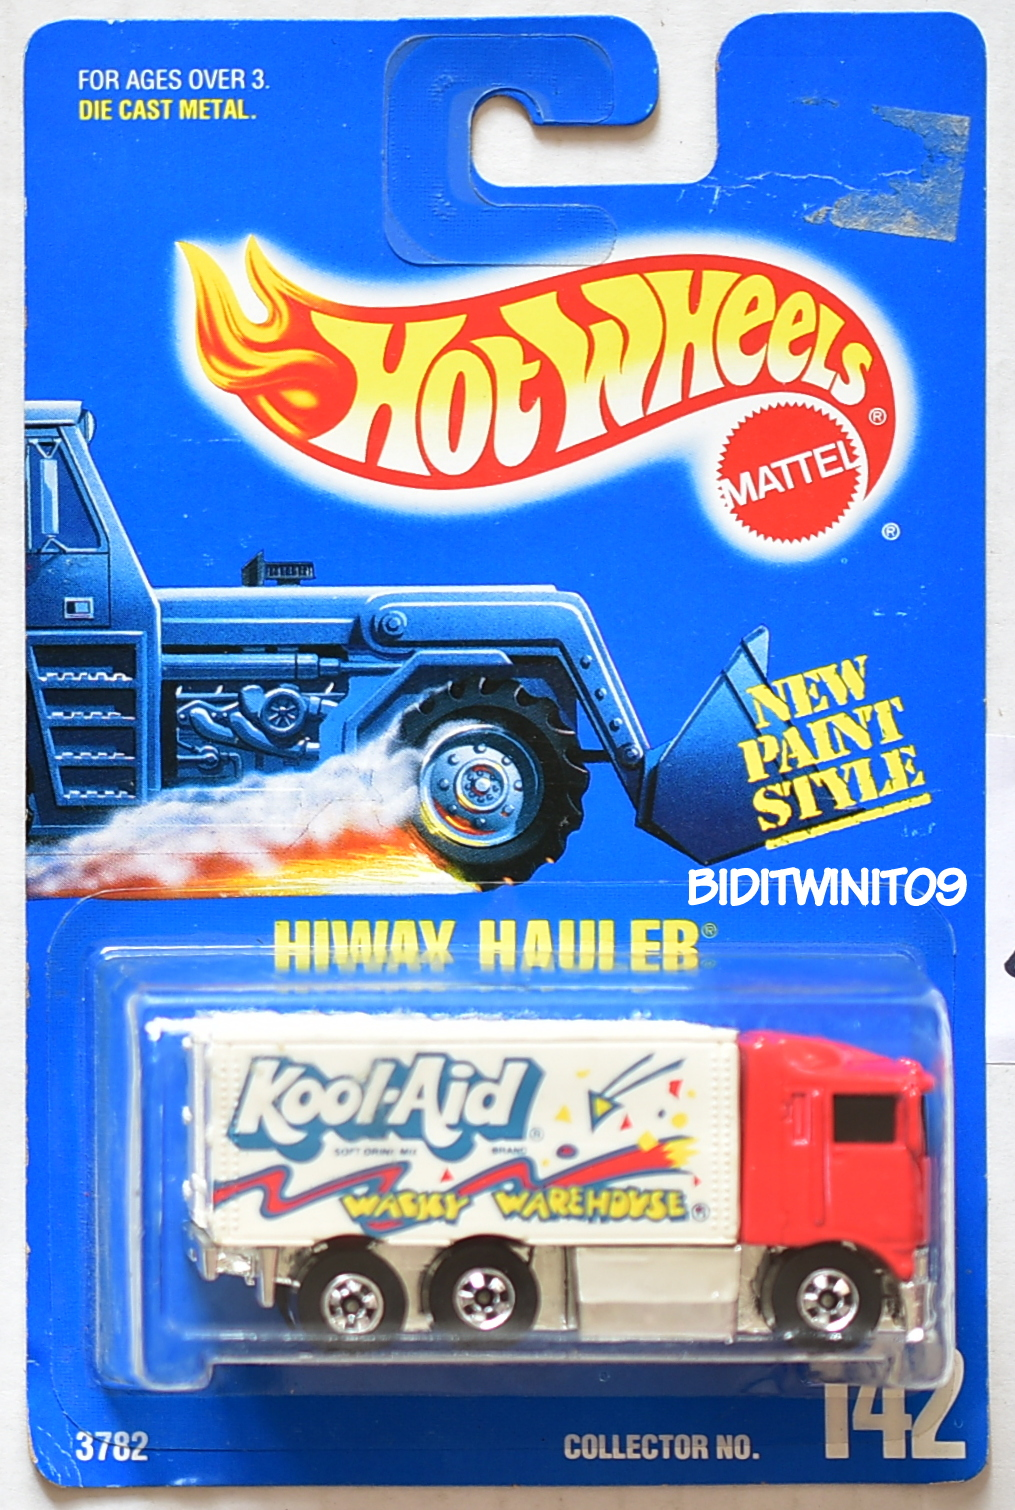 HOT WHEELS 1991 BLUE CARD HIWAY HAULER #238 PURPLE KOOL-AID 21